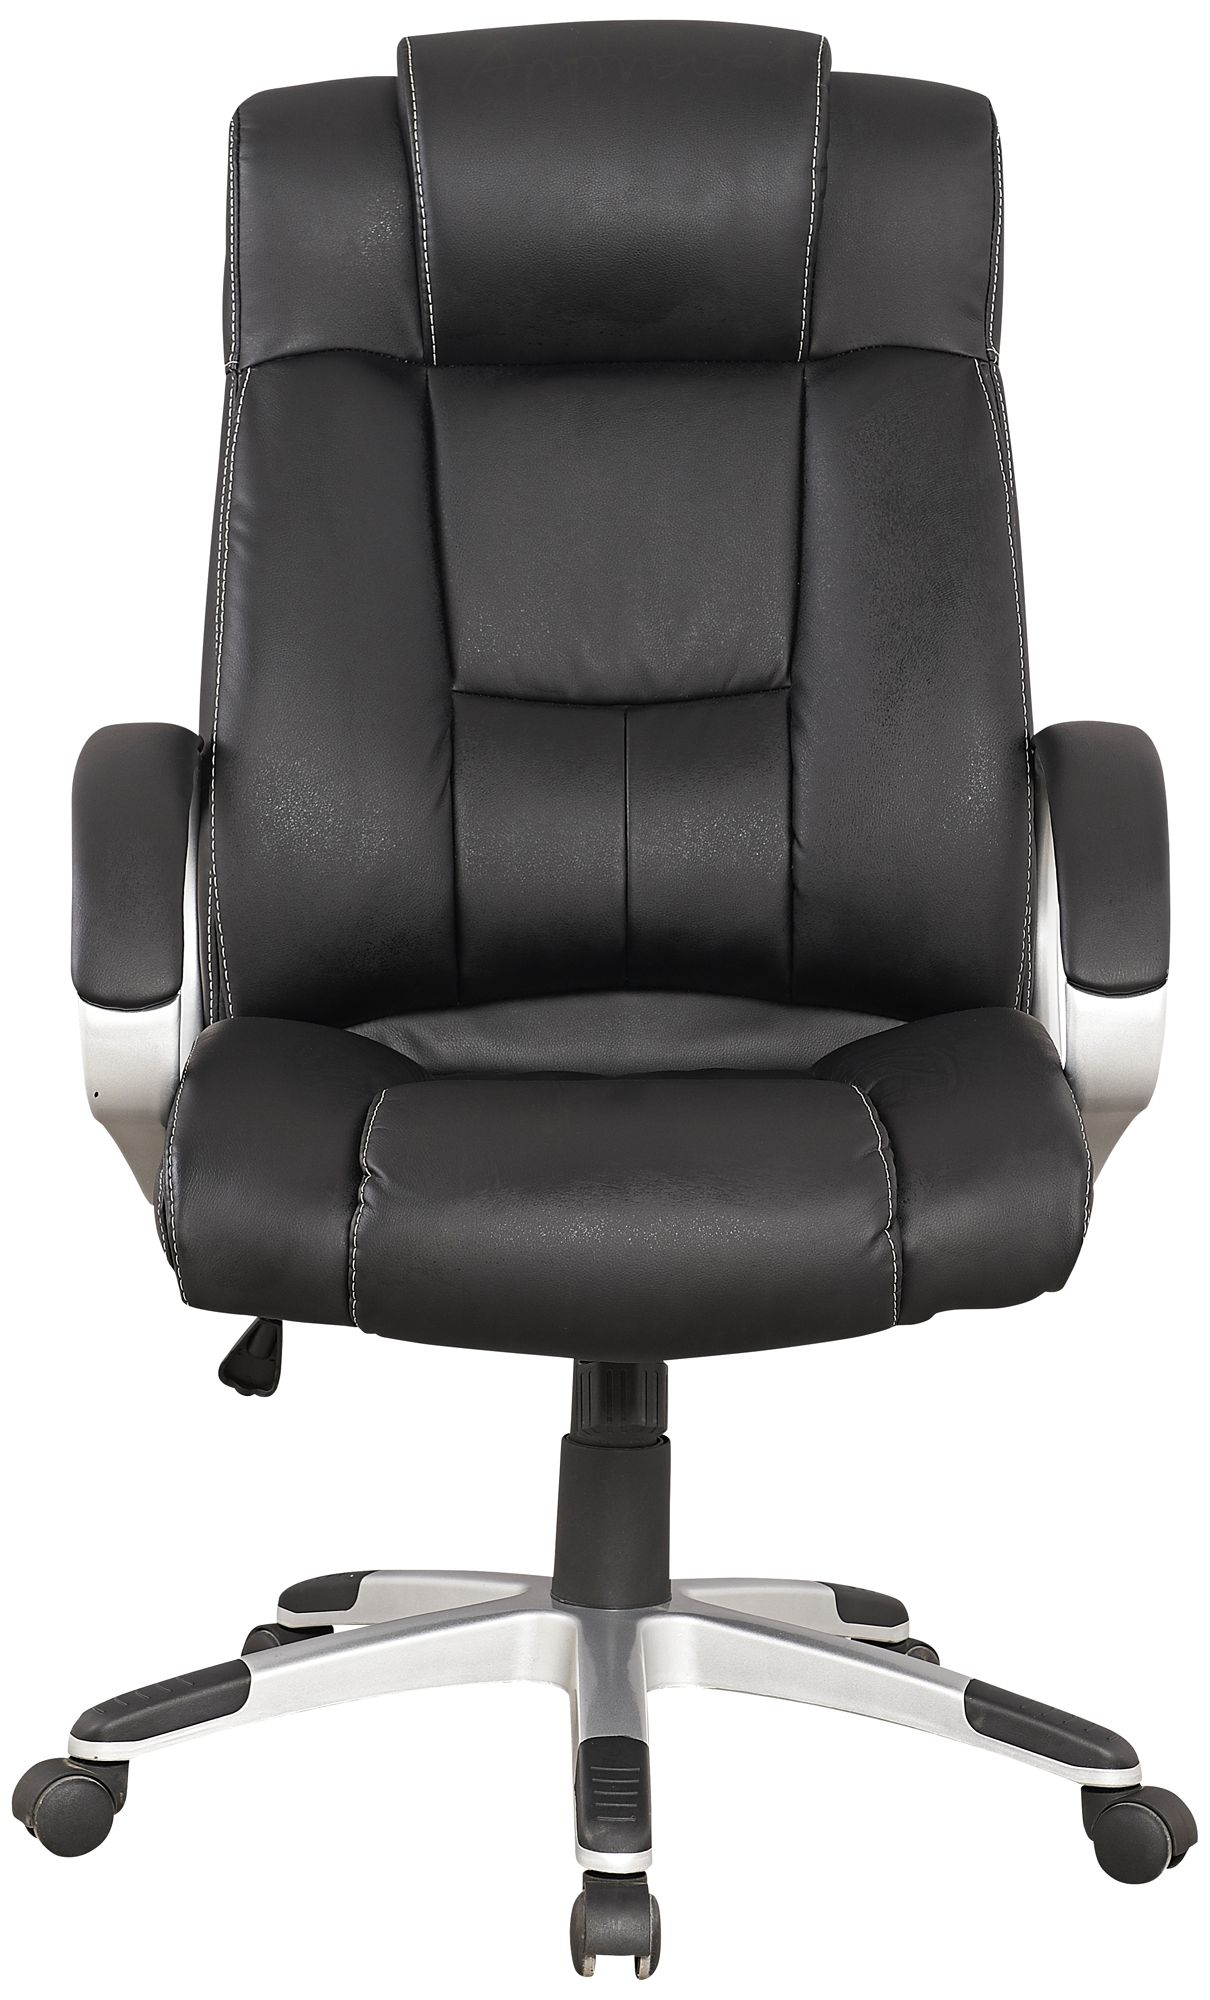 Presidential Washington Black Adjustable Office Chair